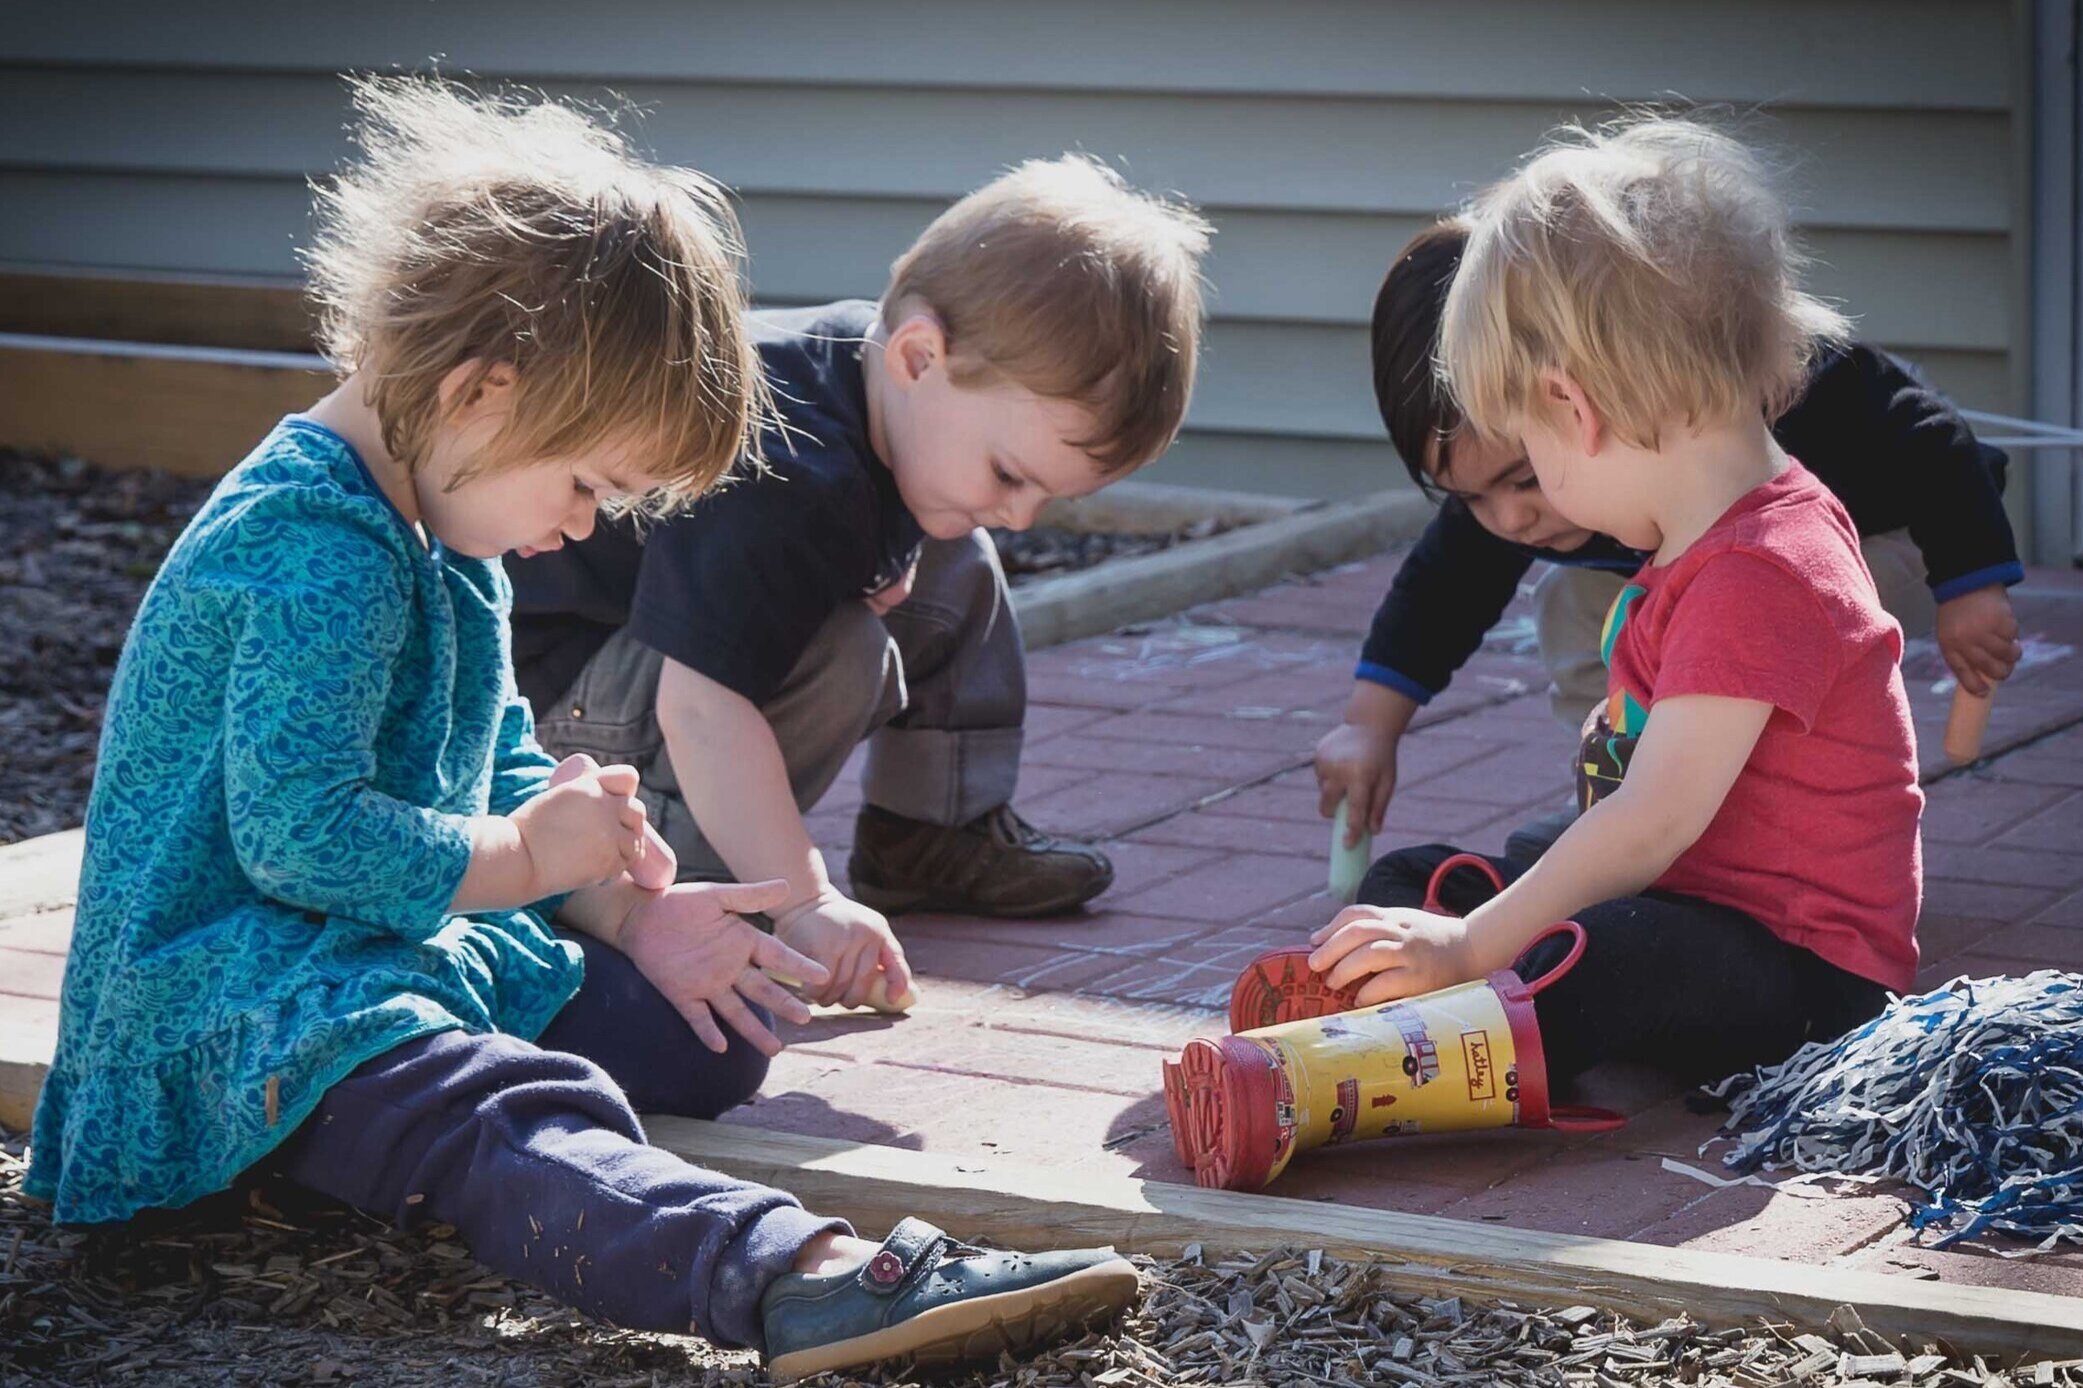 Toddler - 1:6 RATIOOur Toddlers spend their time exploring outside, moving their bodies, developing their independence, and learning healthy and respectful social skills. As always, we follow the child and adapt our environment to suit their needs.